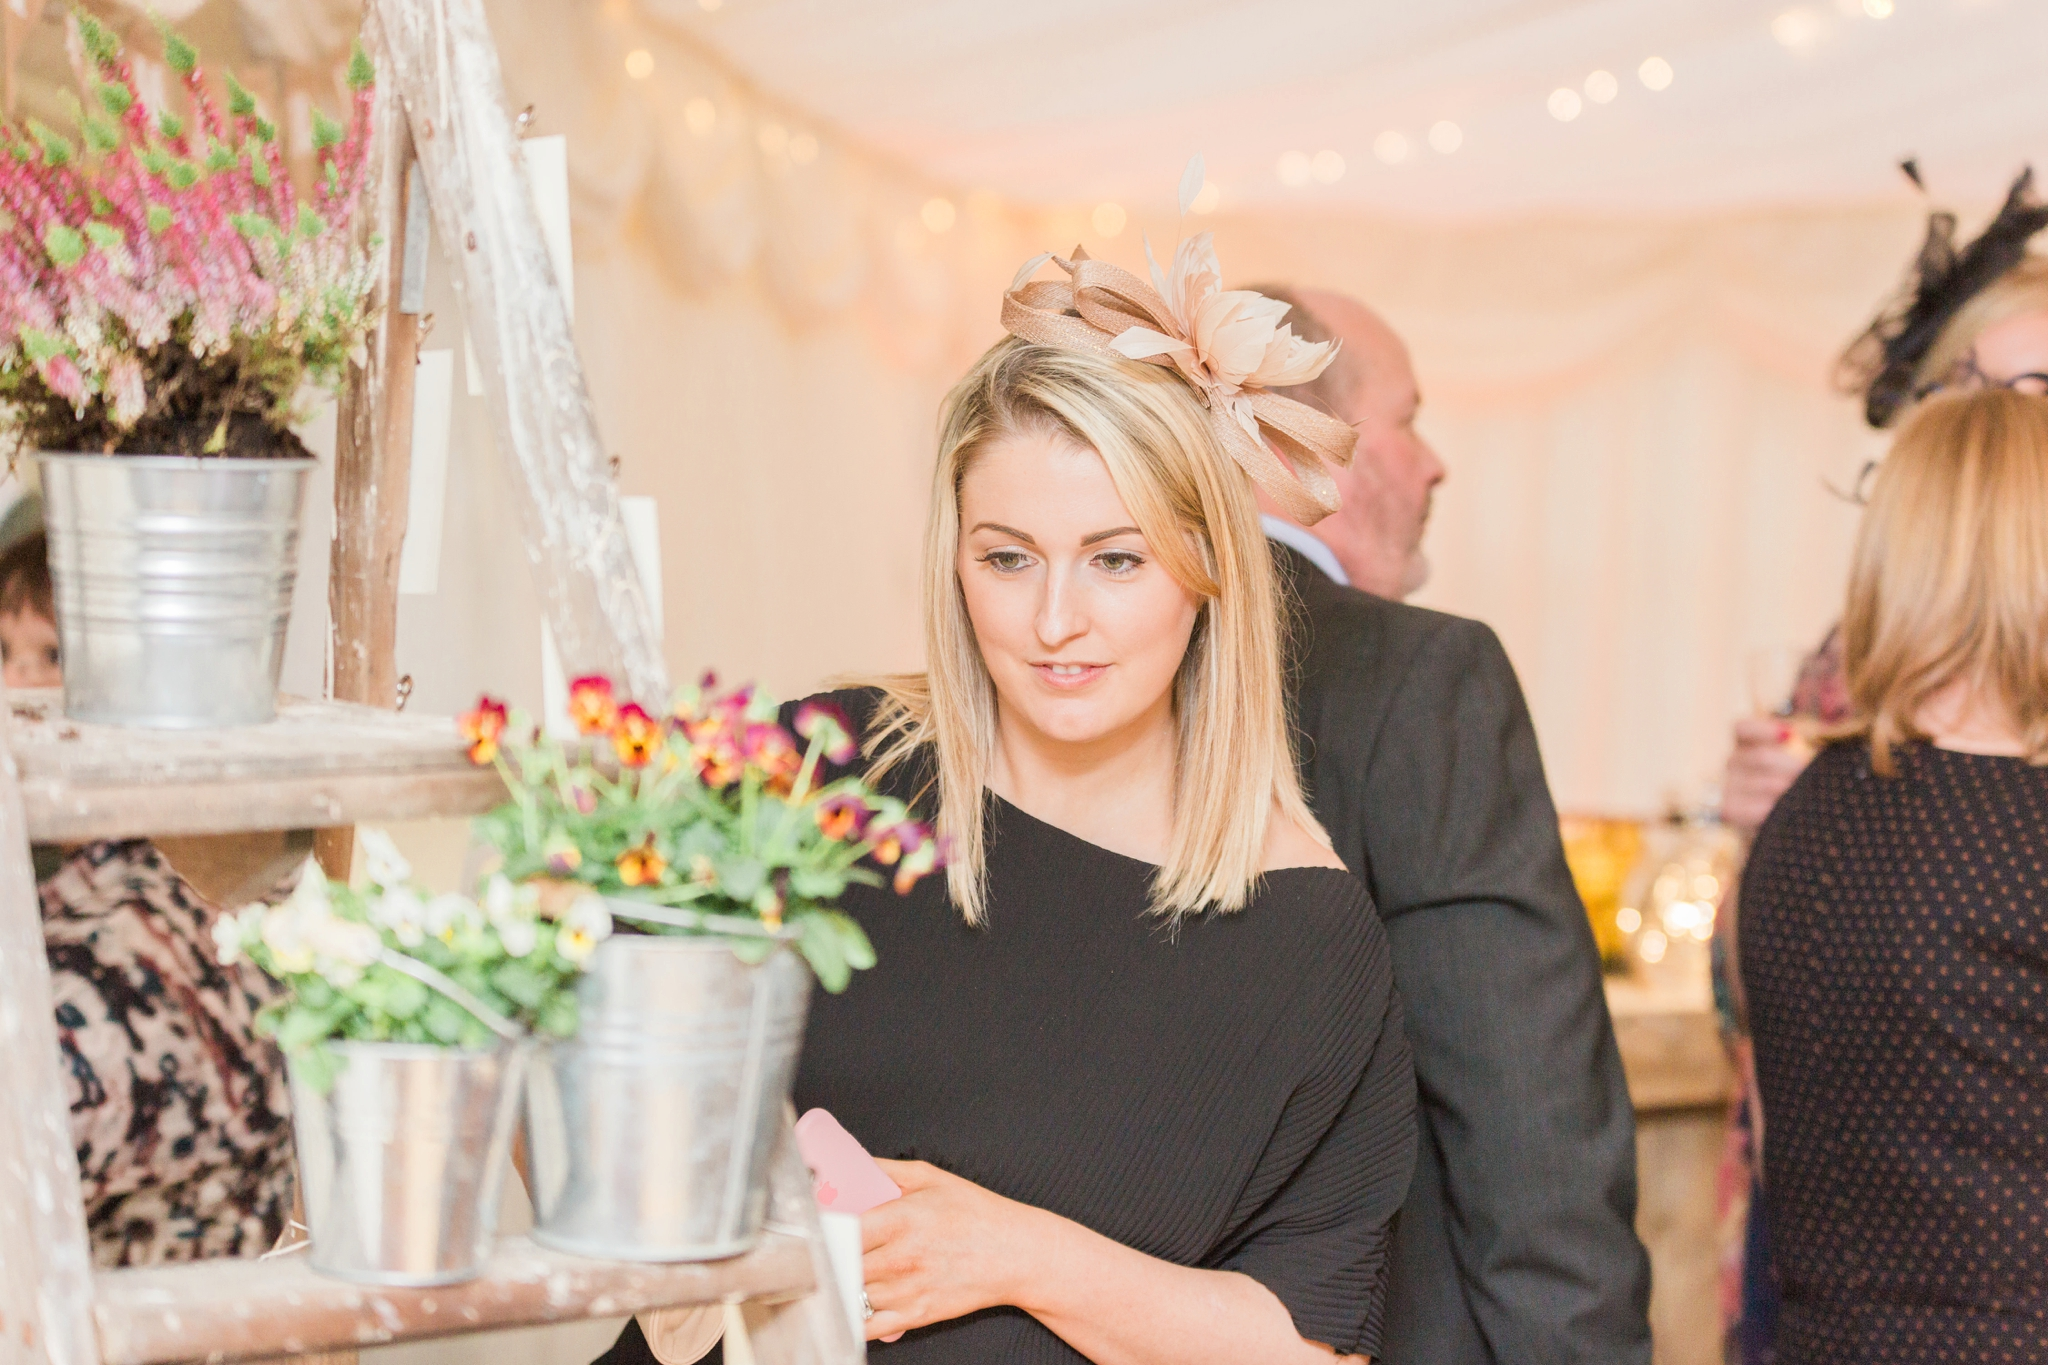 Suzanne_li_photography_kirknewton_wedding_0051.jpg